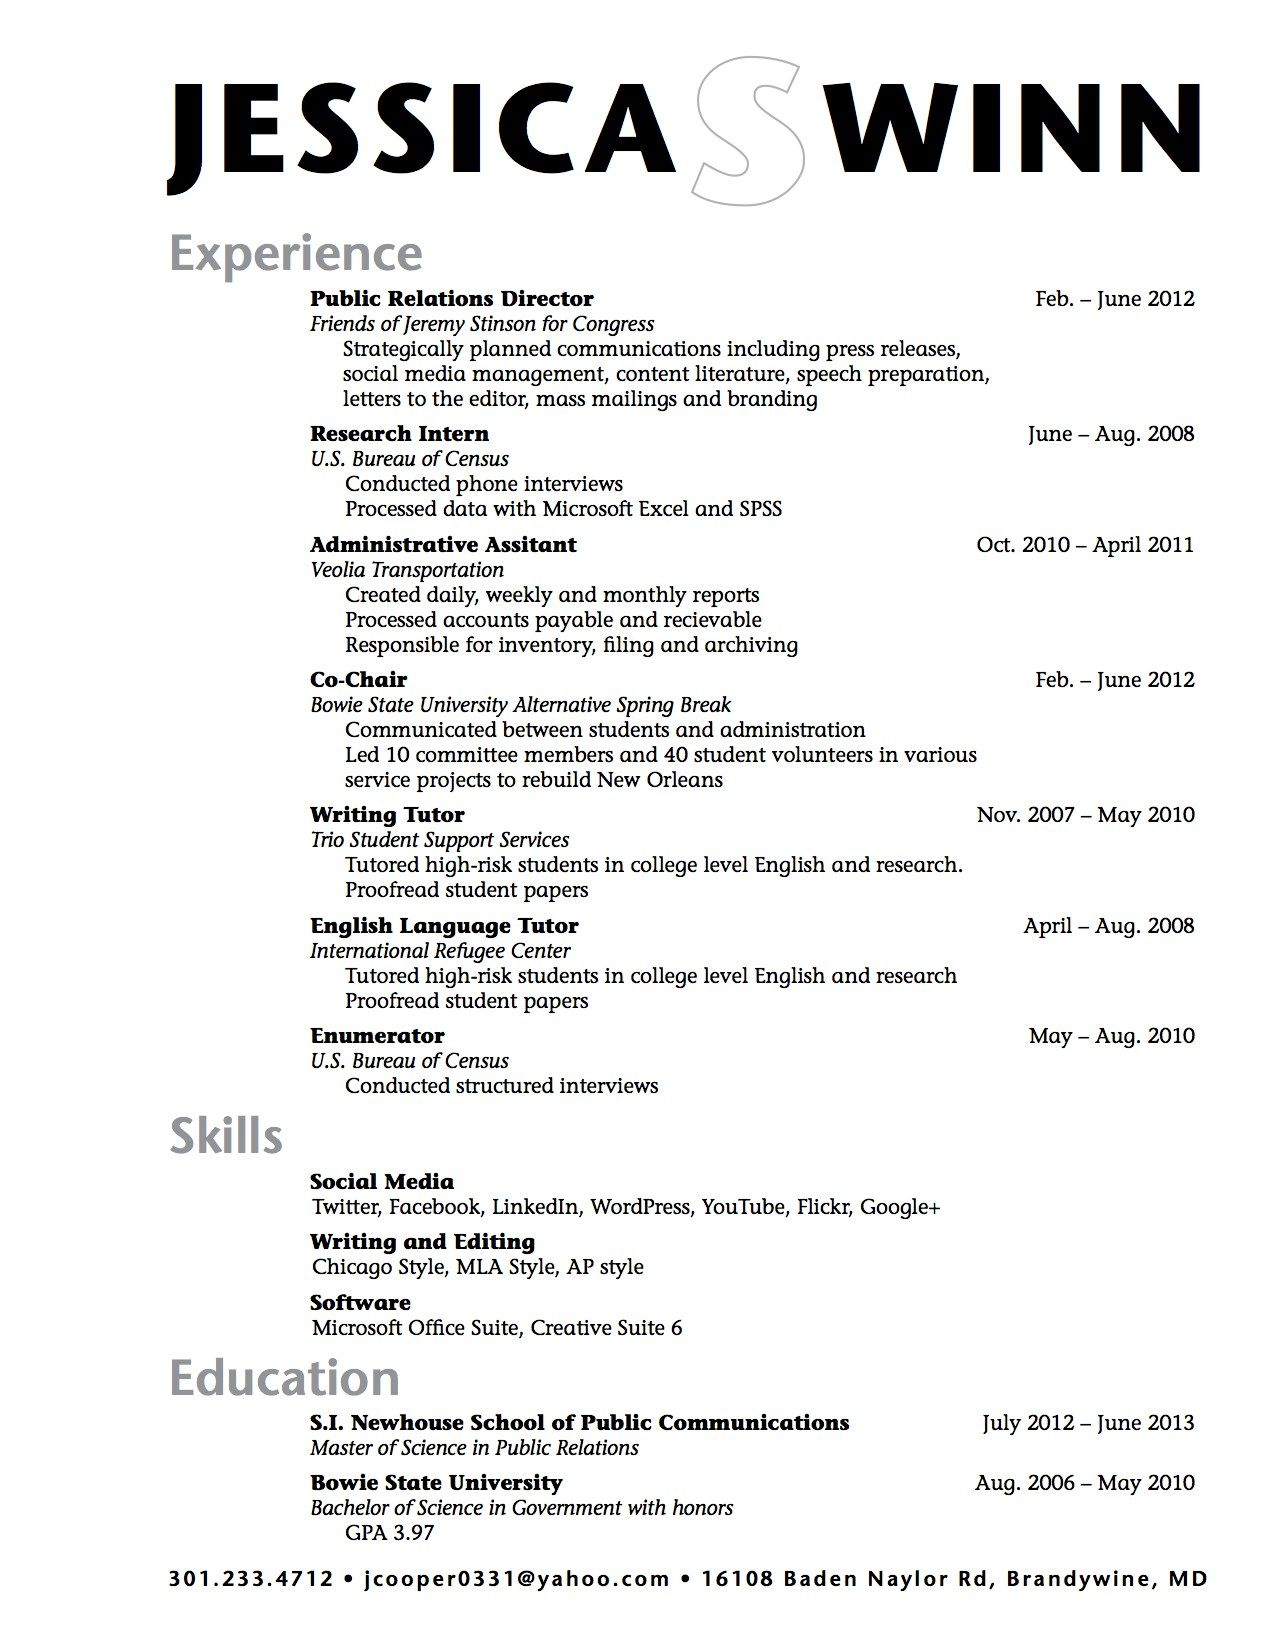 Resume Resume For Inexperienced High School Student cool design sample nursing student resume 4 objectives for high school example example